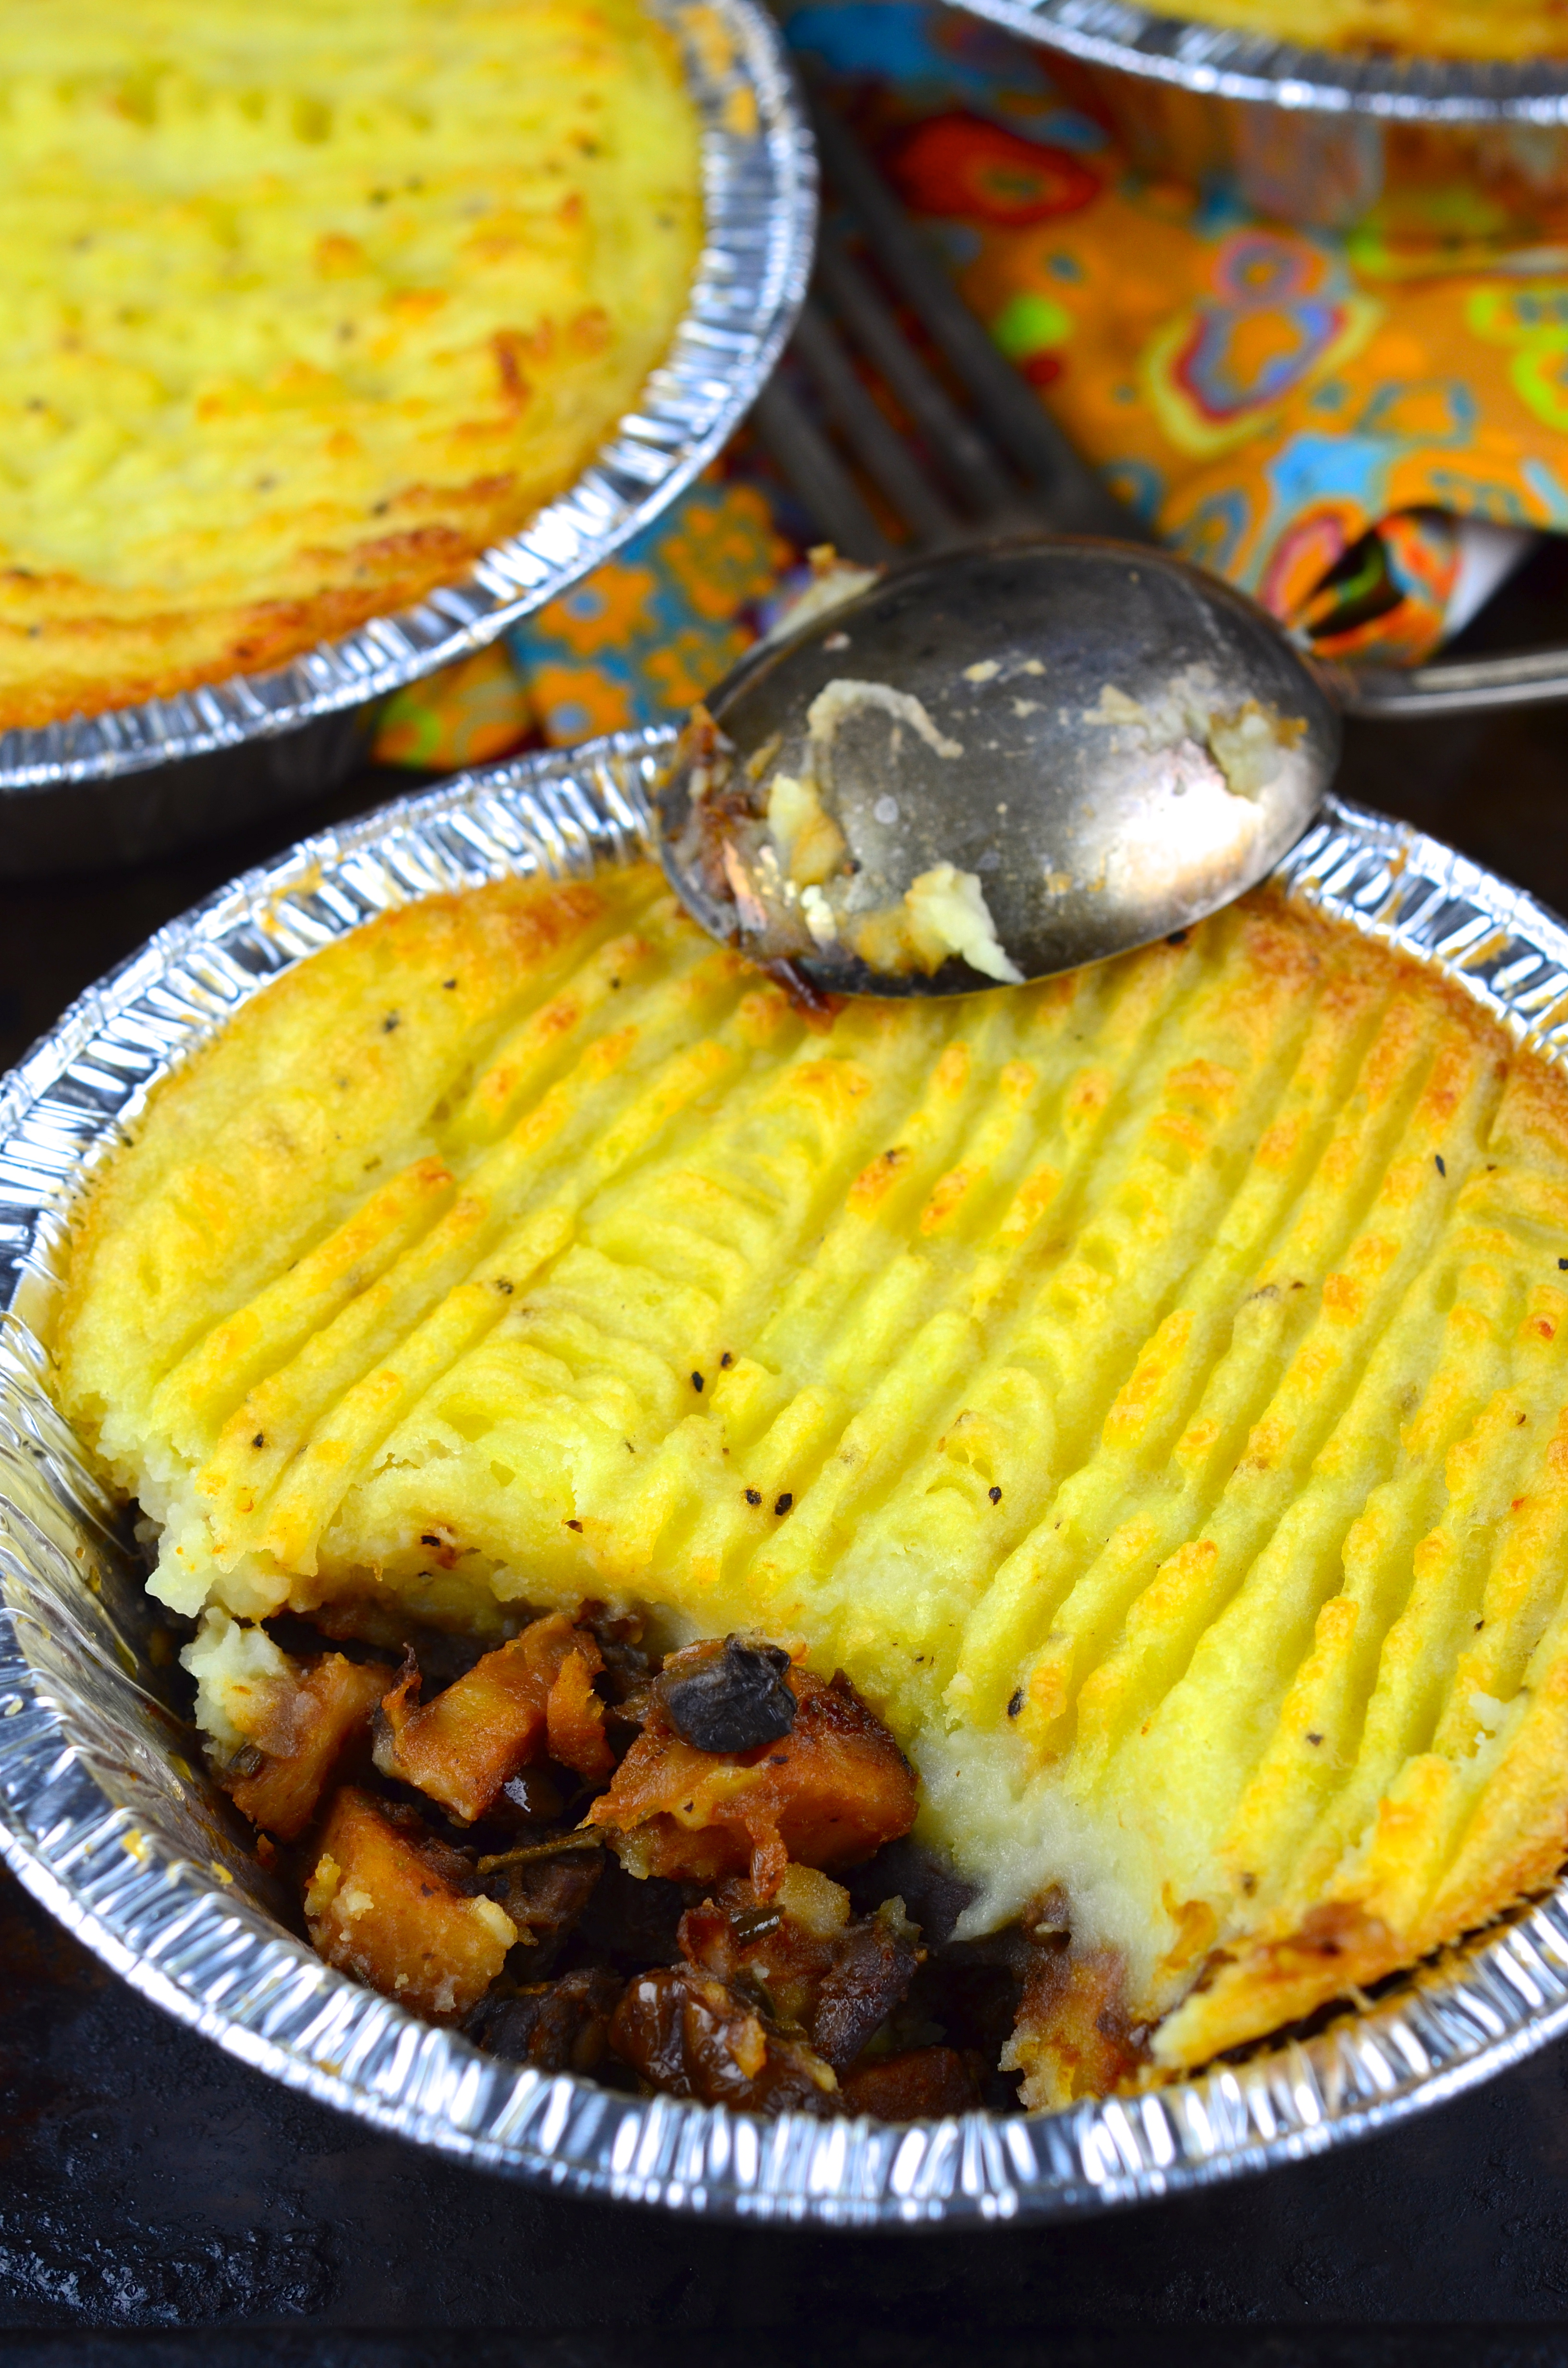 Gluten Free Passover Recipes part 6: Vegan Shepherd's Pie